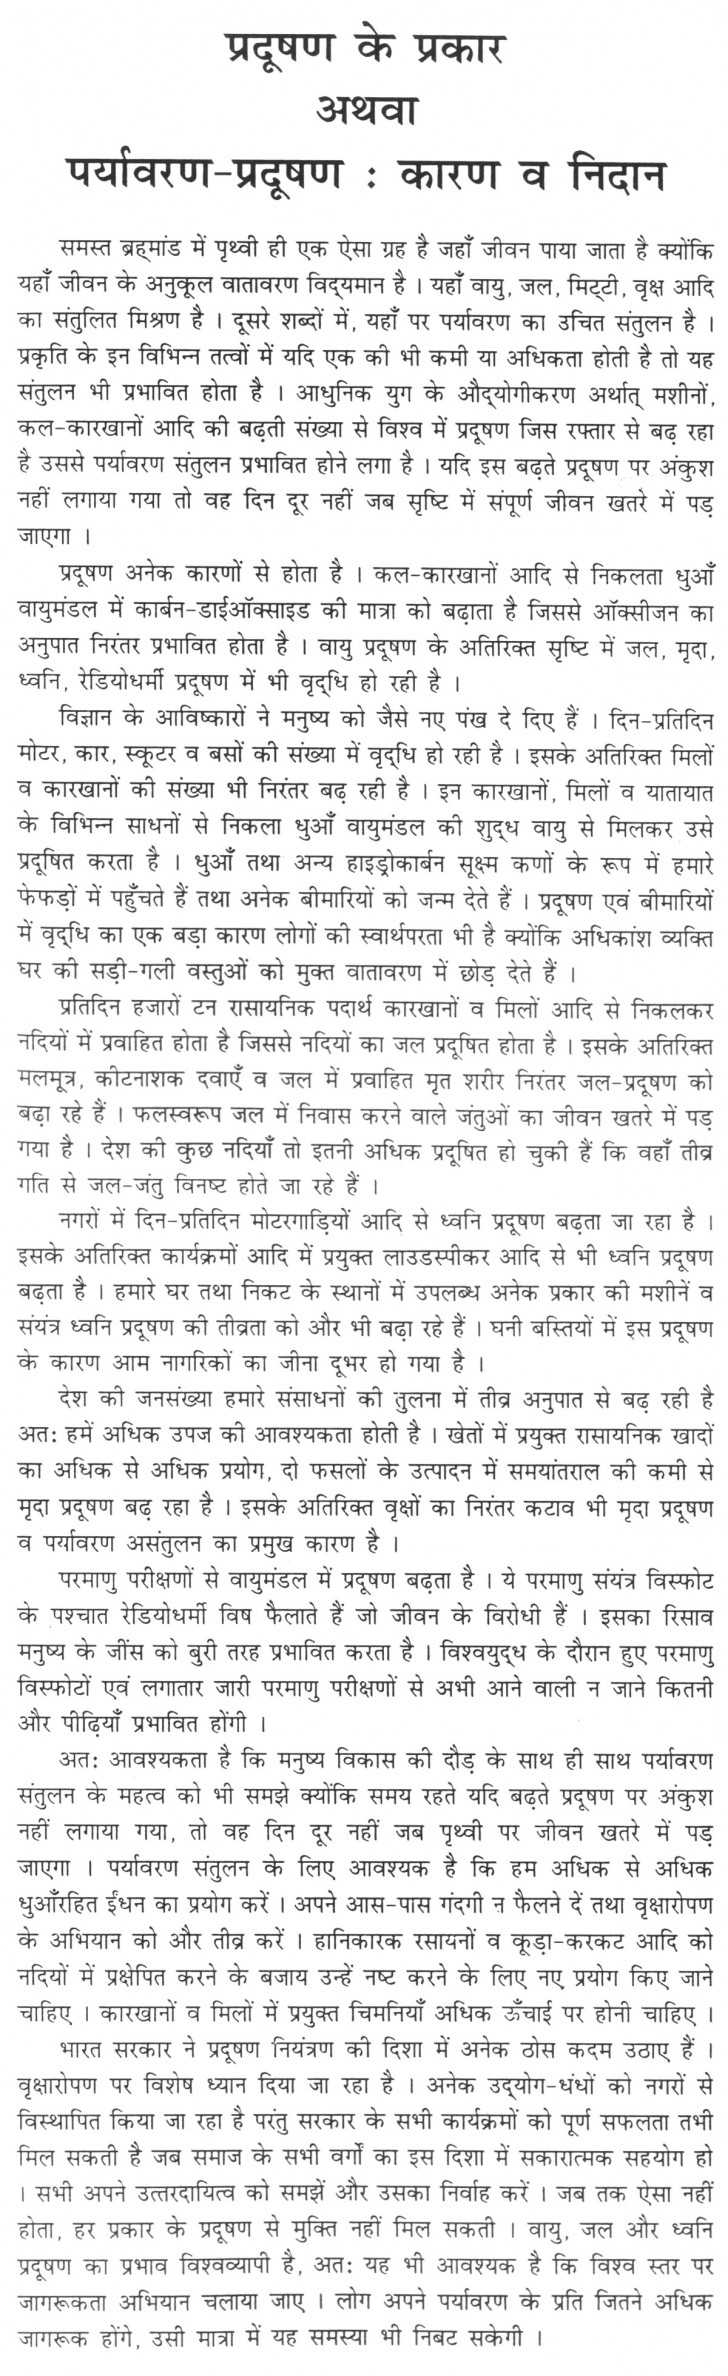 014 Good Habits Essay In Hindi Exceptional Habit Eating And Bad 728